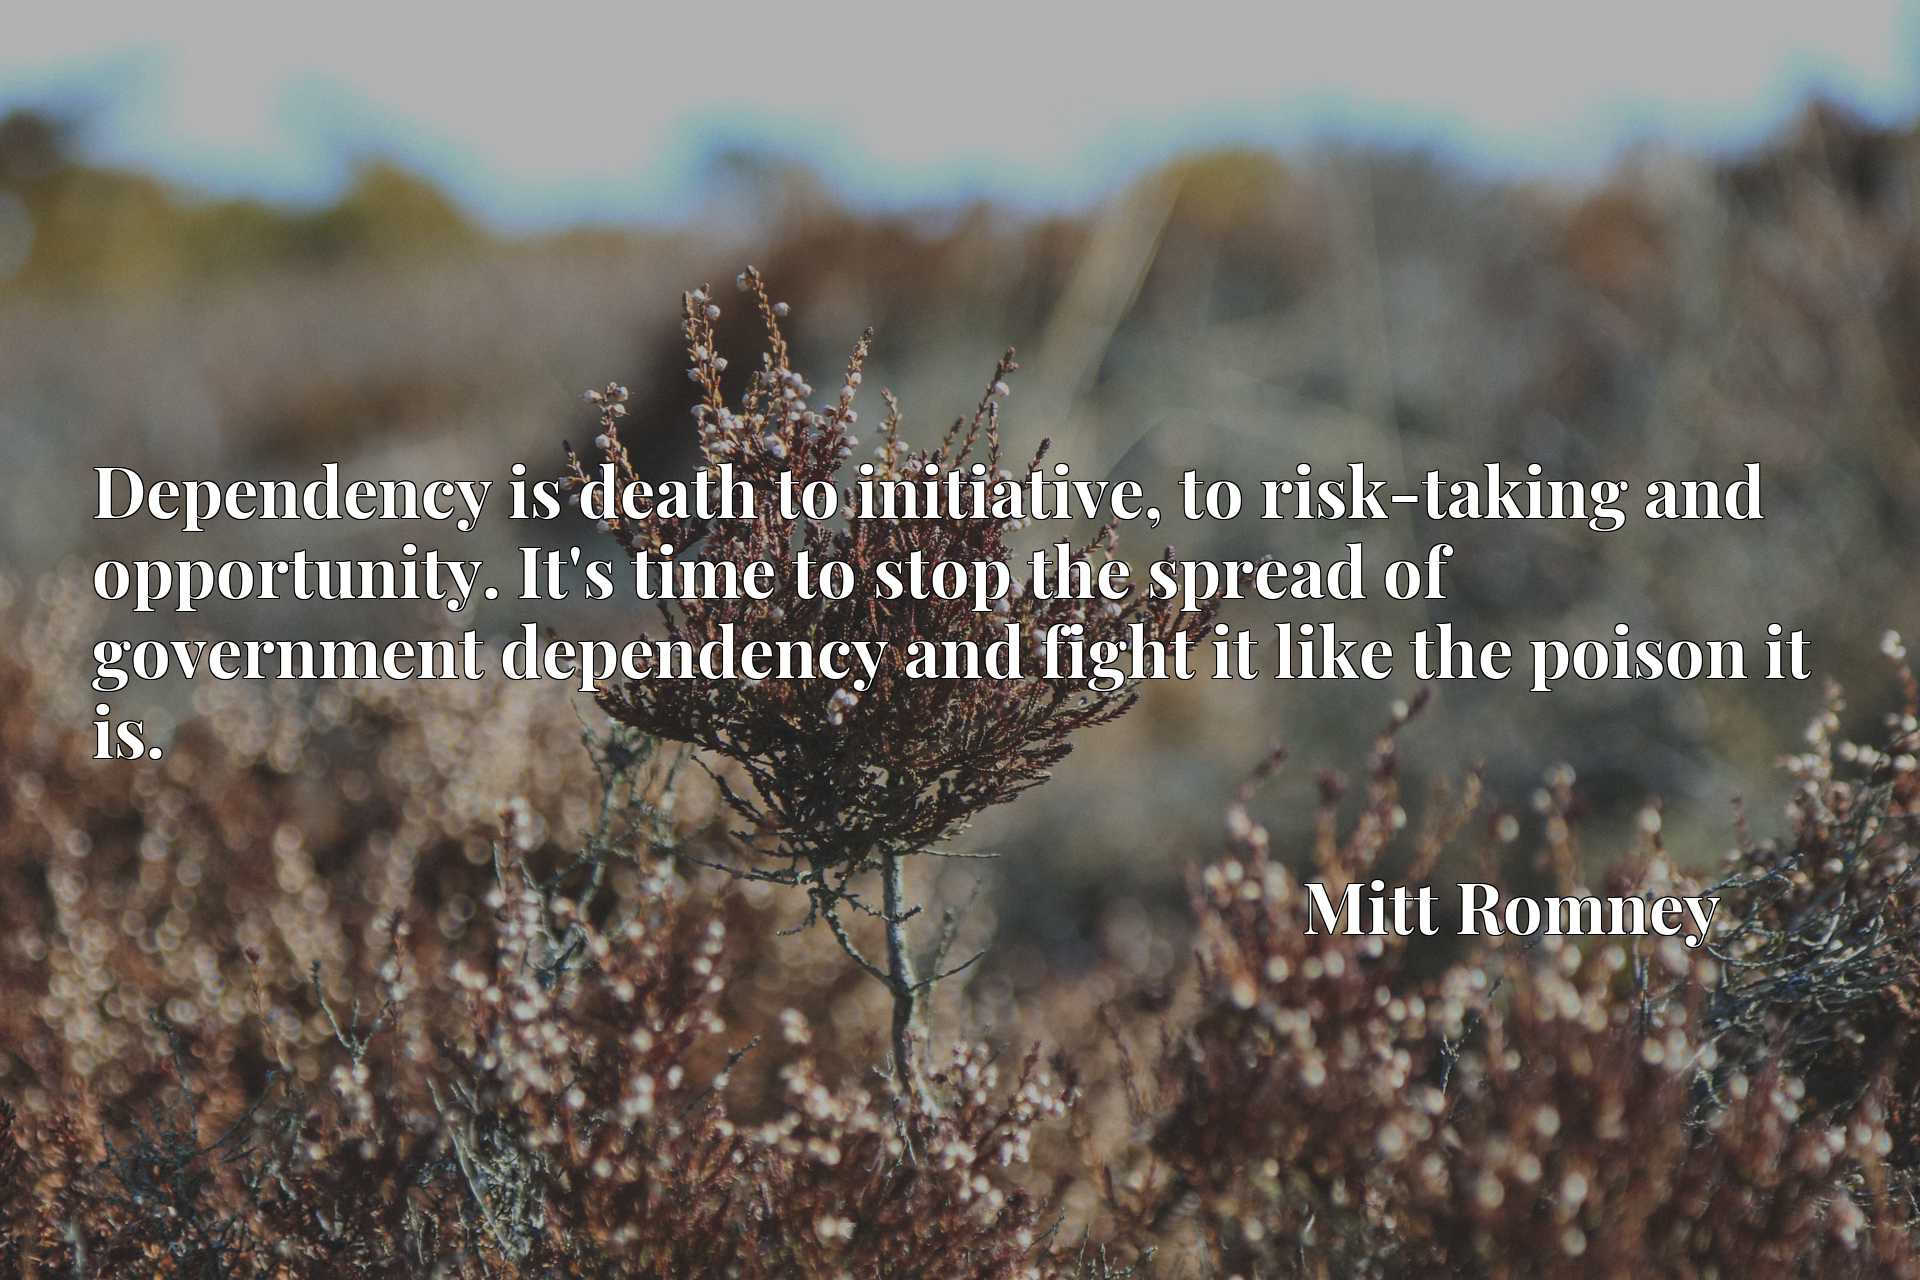 Dependency is death to initiative, to risk-taking and opportunity. It's time to stop the spread of government dependency and fight it like the poison it is.